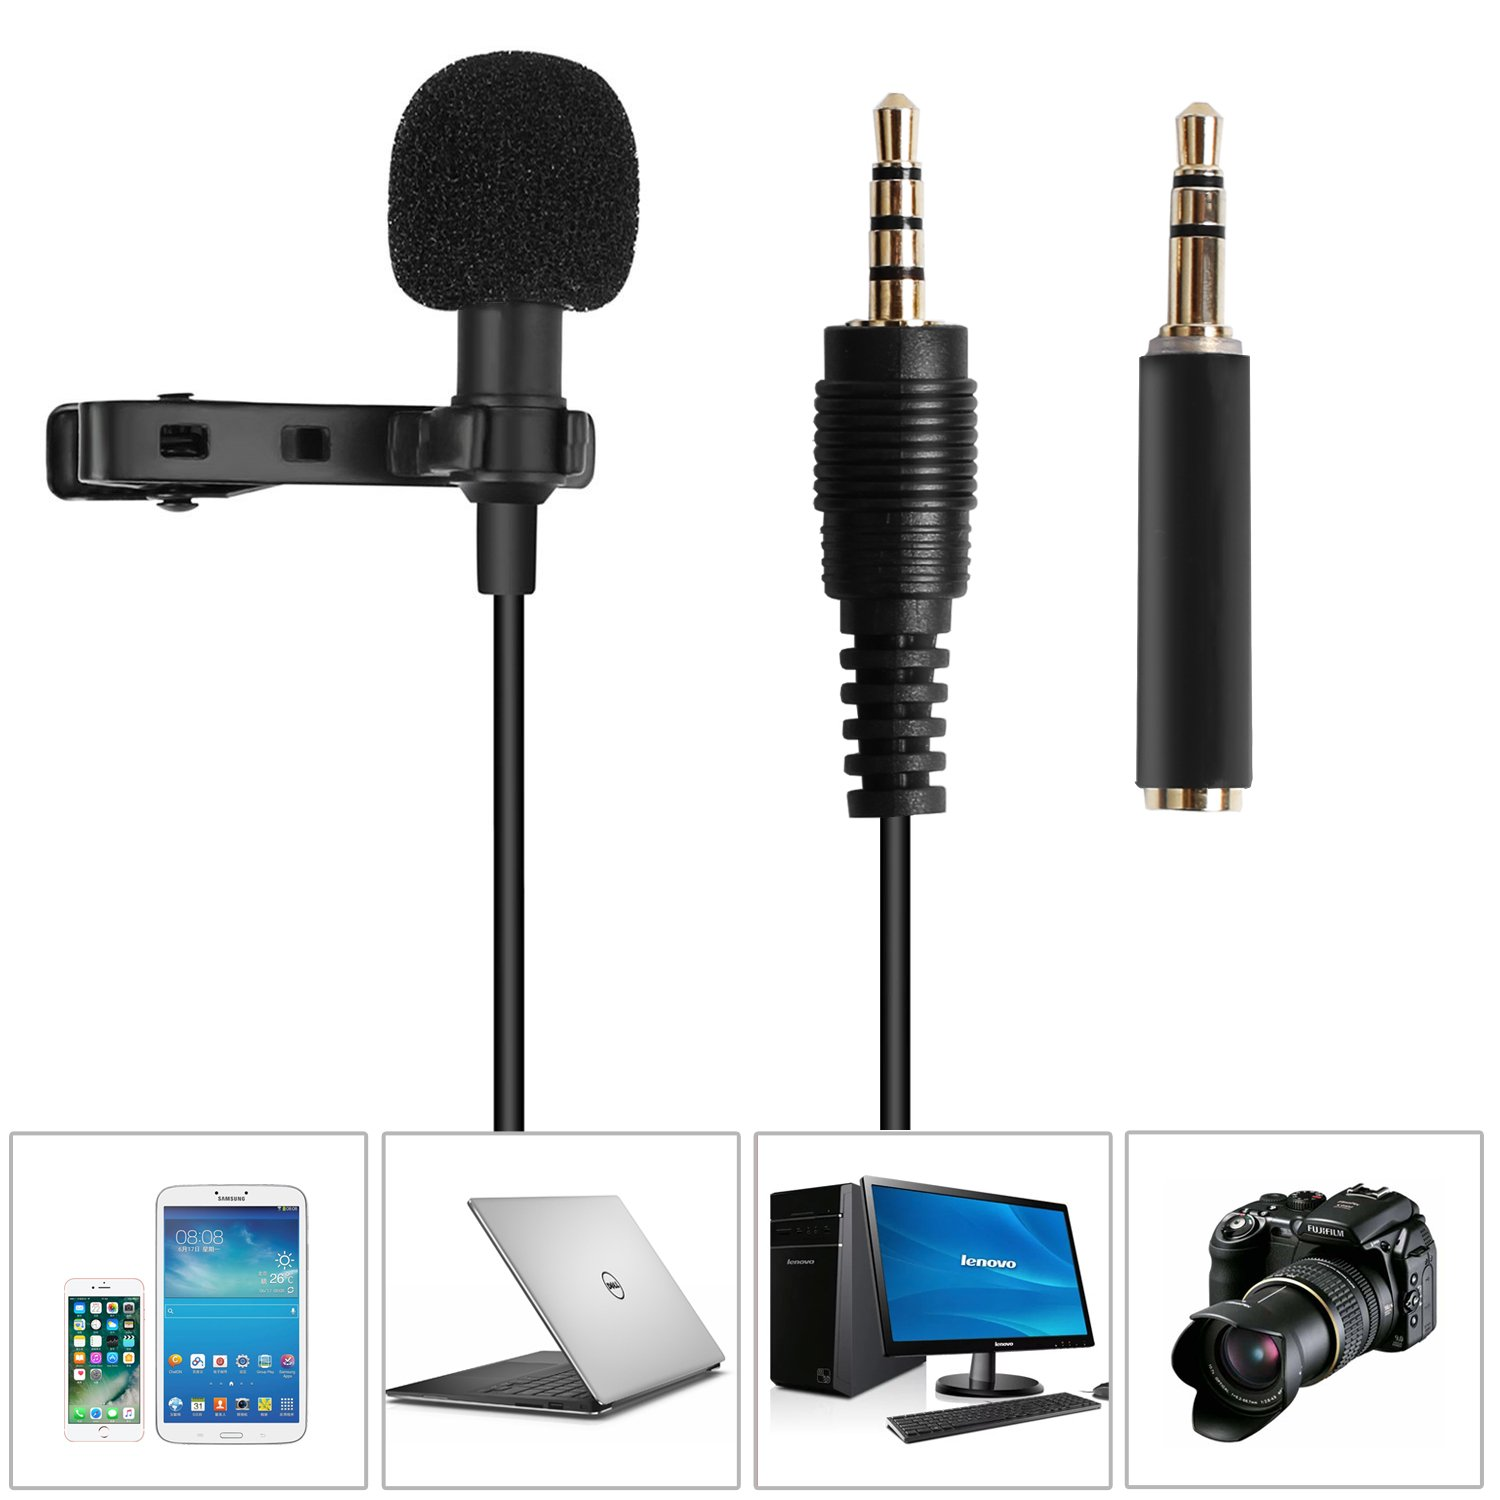 Lavalier Lapel Microphone,Omnidirectional Condenser Microphone Recording Clip-On for Computer PC Macbook iPhone iPod iPad Samsung All Smartphones,Perfect for Interviews,Skype,Audio Video Recording